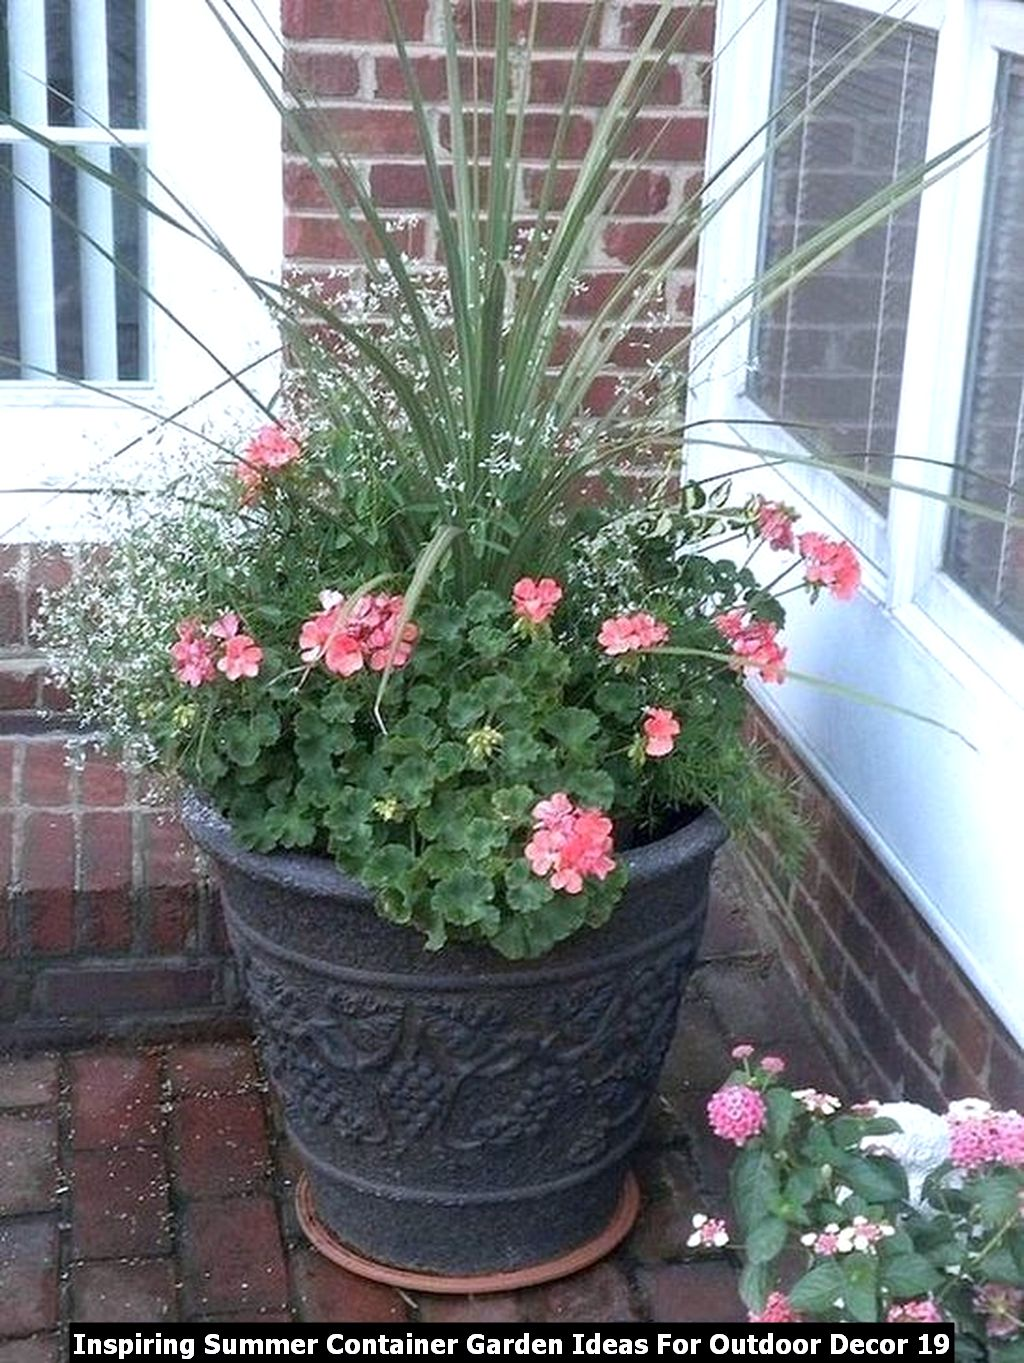 Inspiring Summer Container Garden Ideas For Outdoor Decor 19